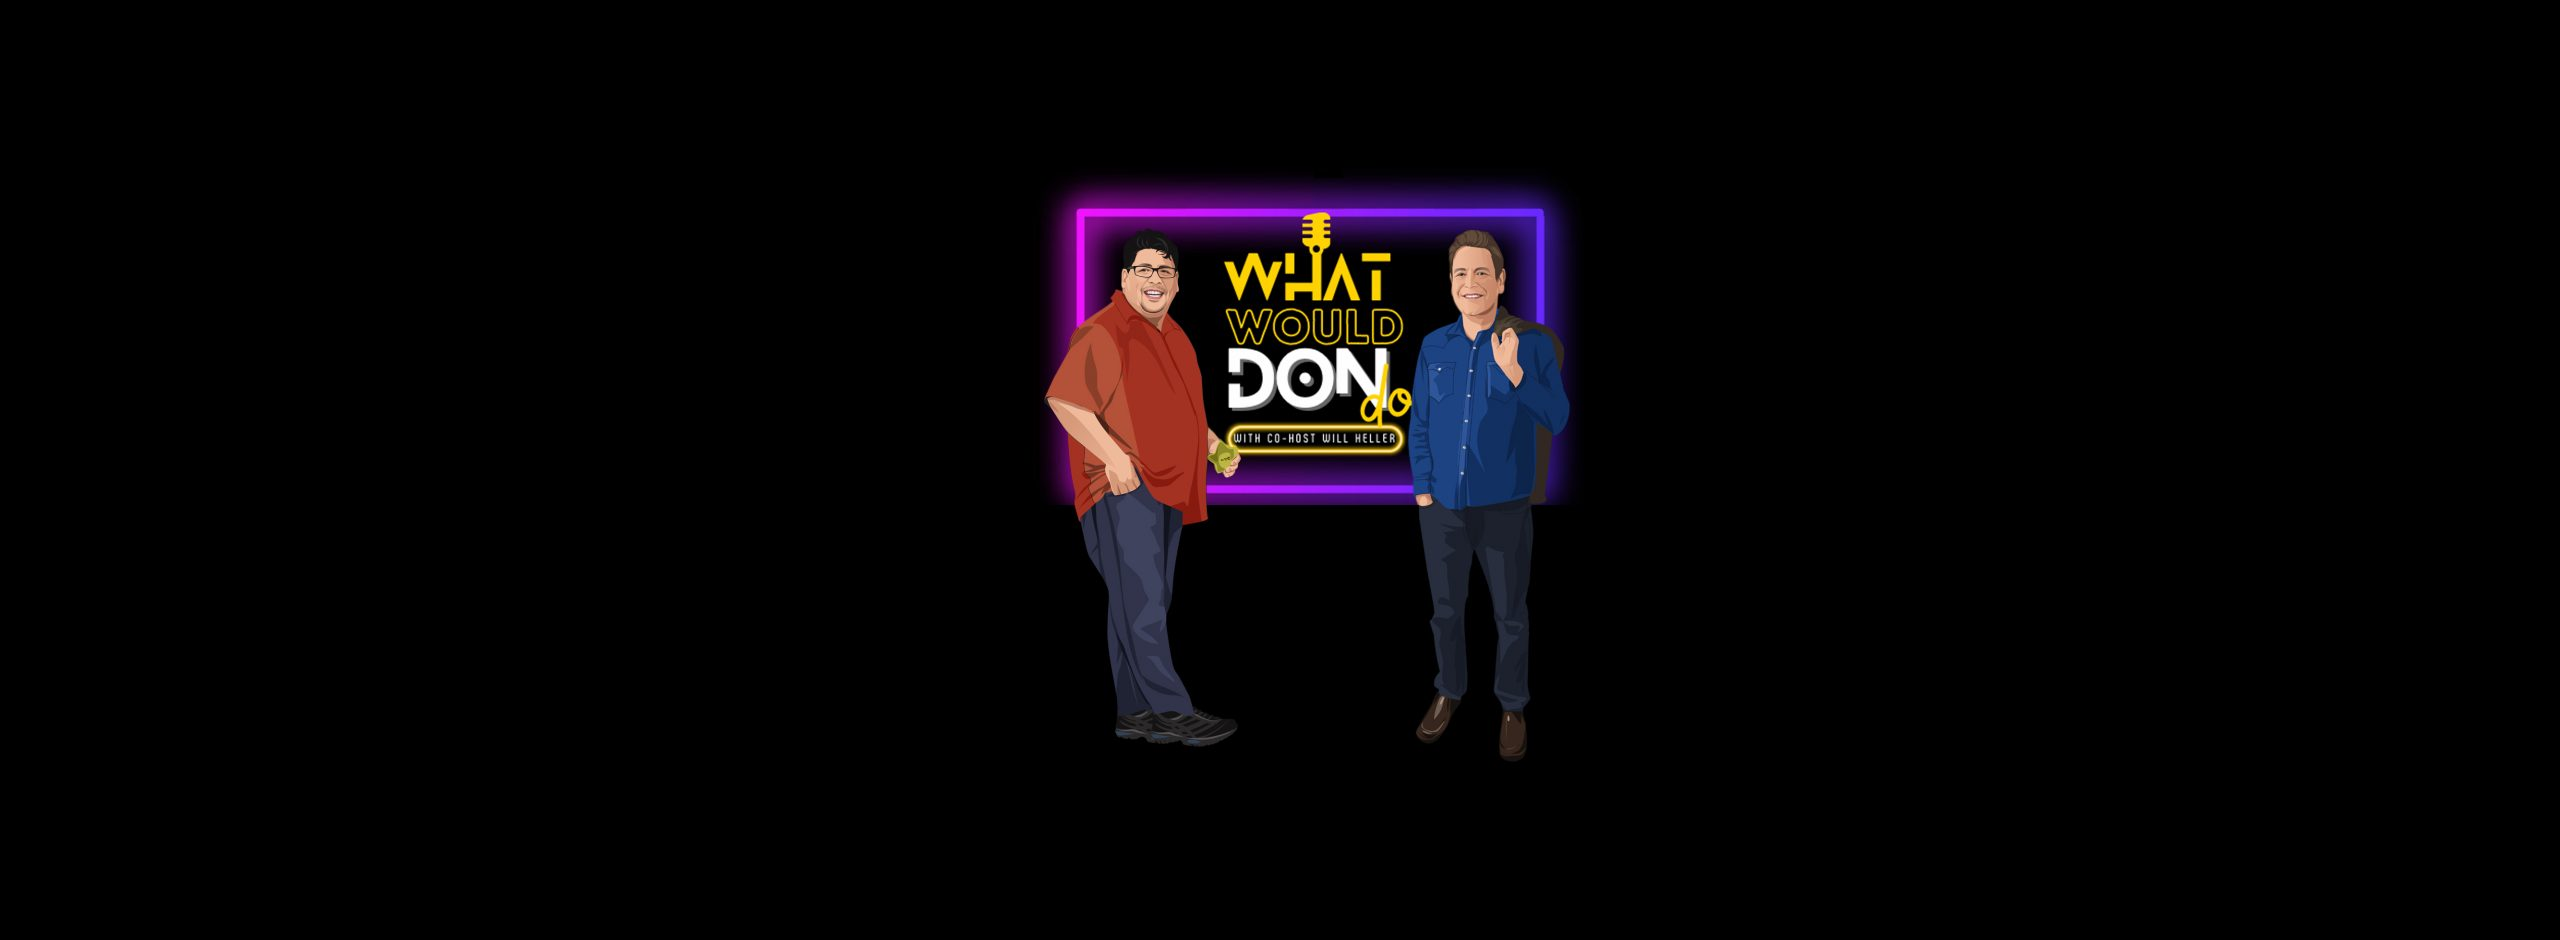 don and will background